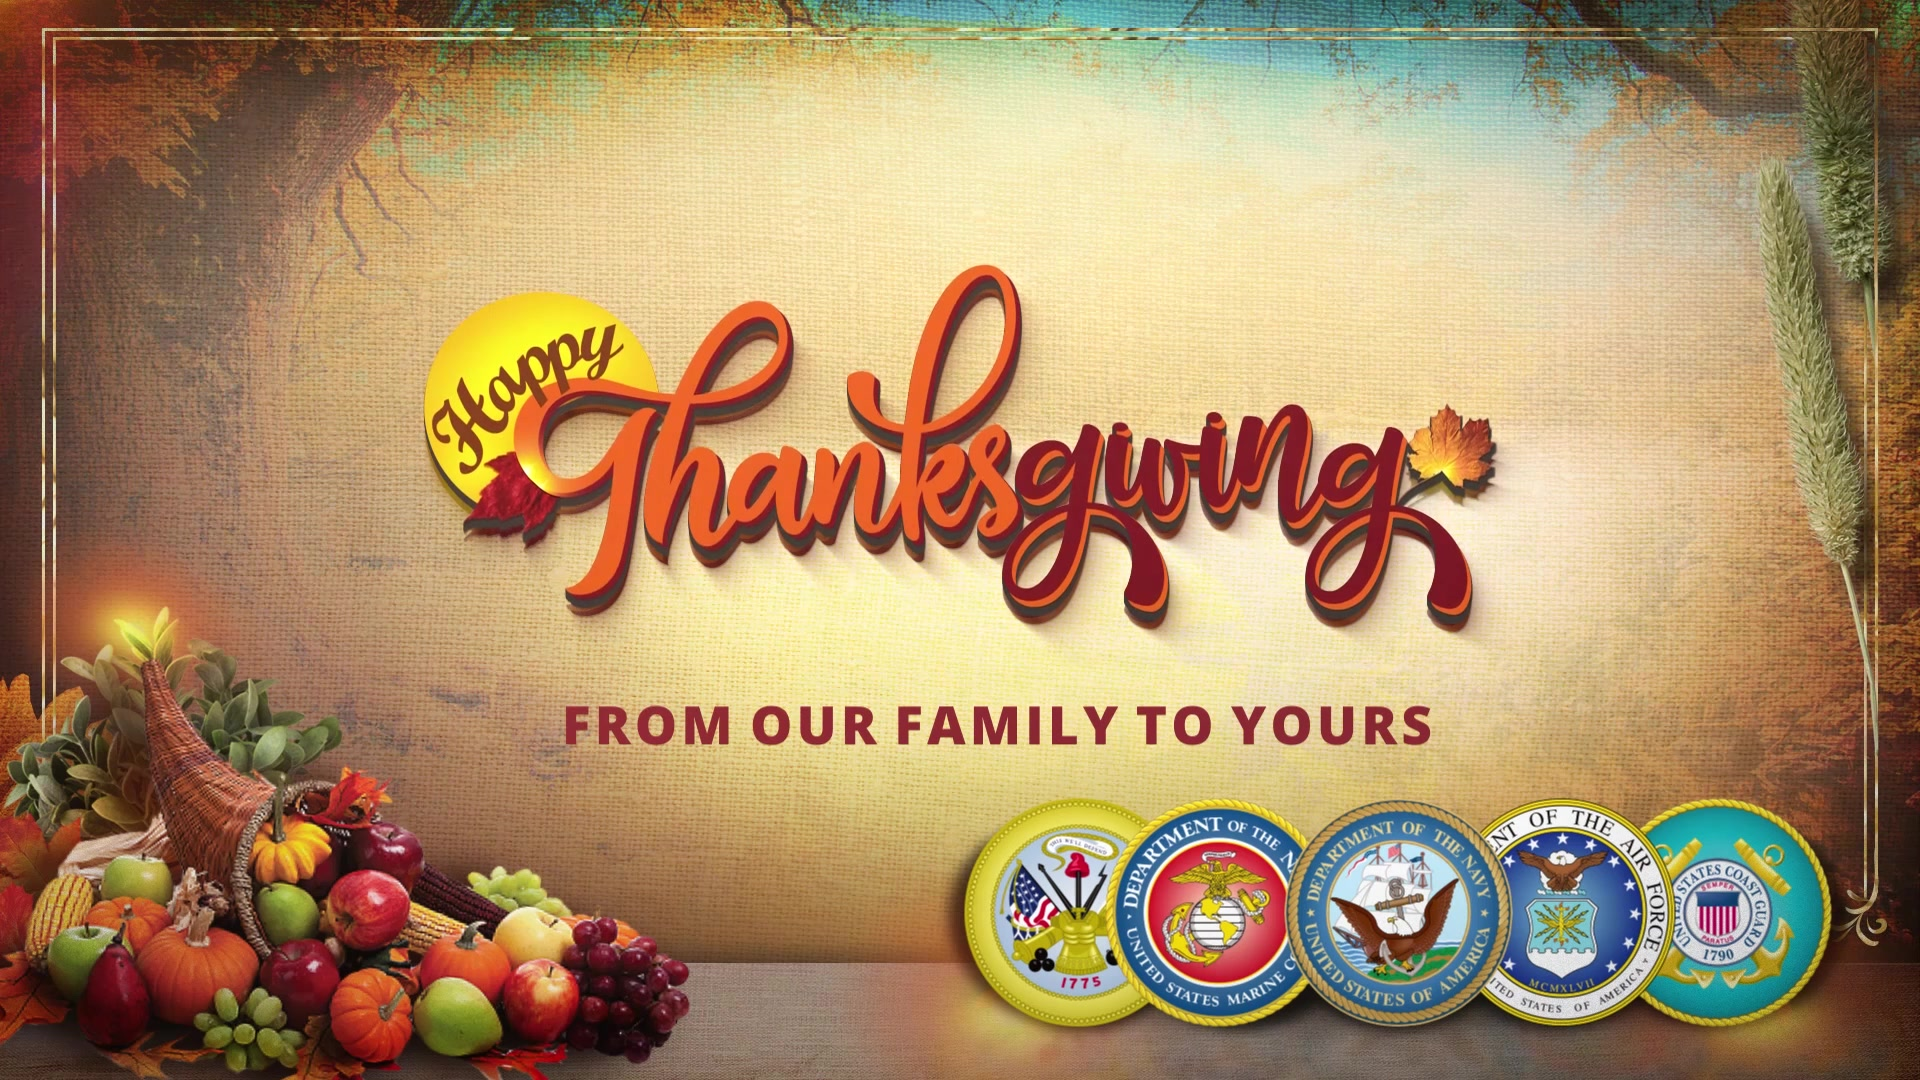 Soldiers from around the world take a moment to wish their families and friends a Happy Thanksgiving.